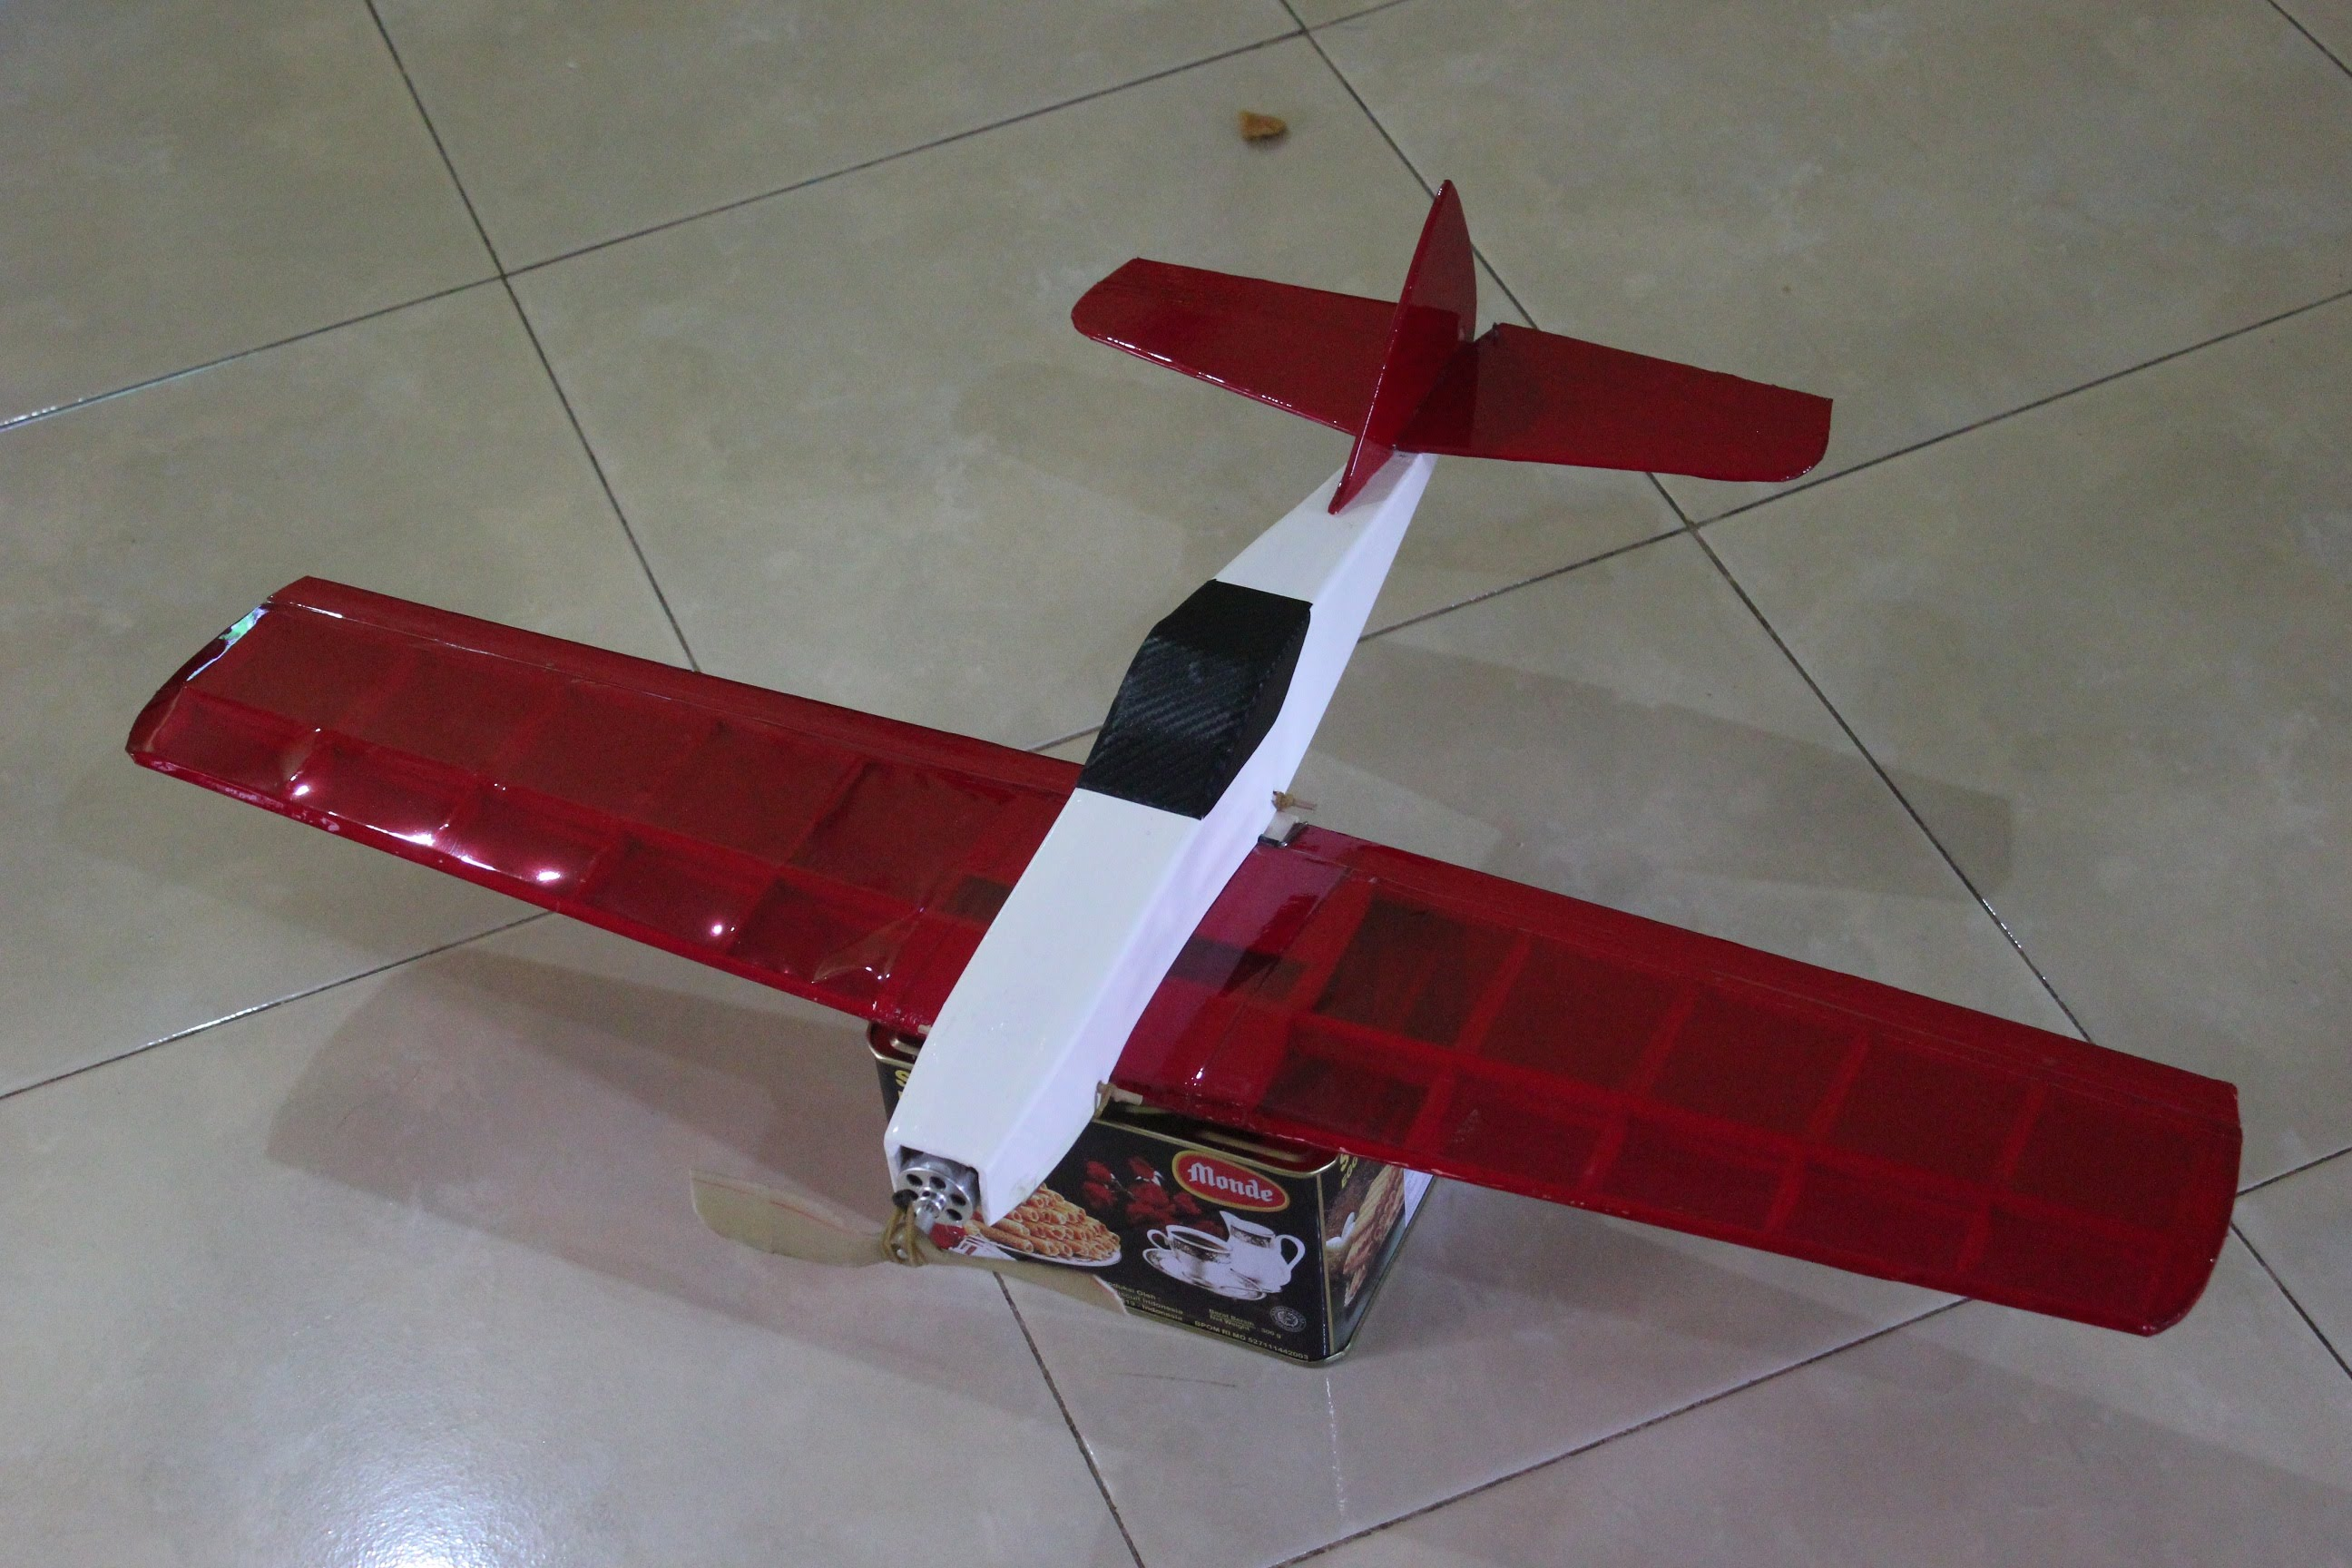 5 Best Simple Balsa Rc Plane Plans Free Pdf Video Download - #Summer